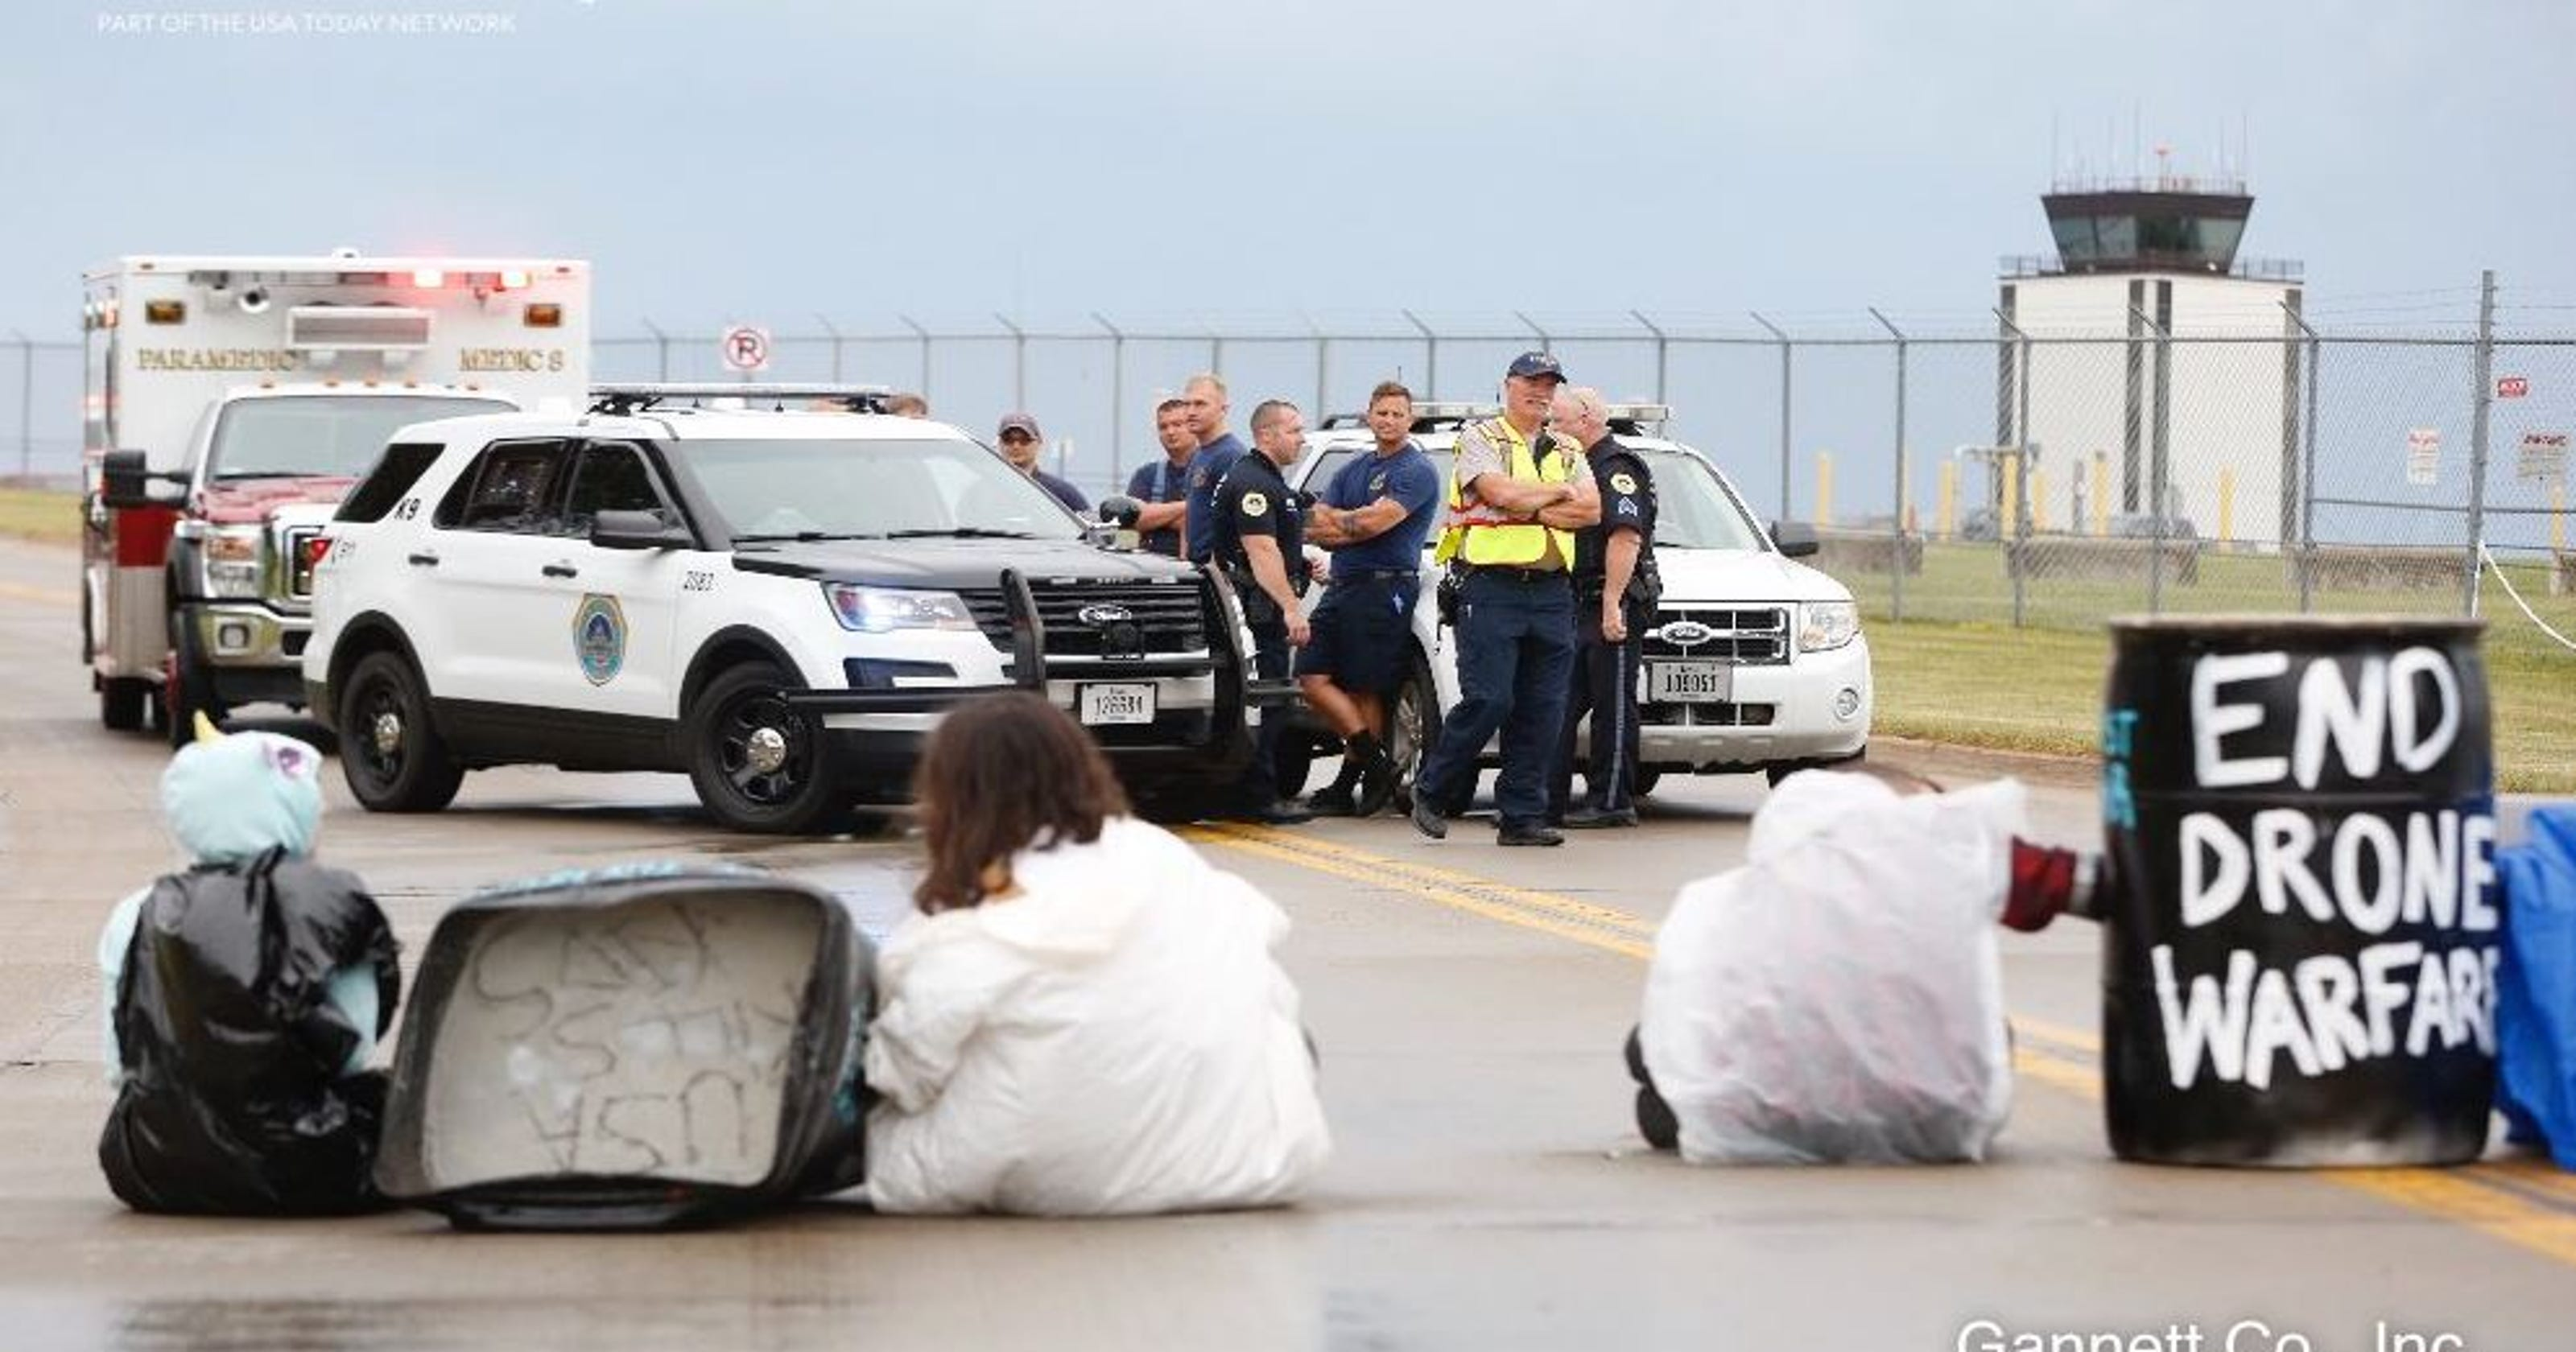 d9f65c7dbe17 4 arrested protesting drones at Iowa Air National Guard